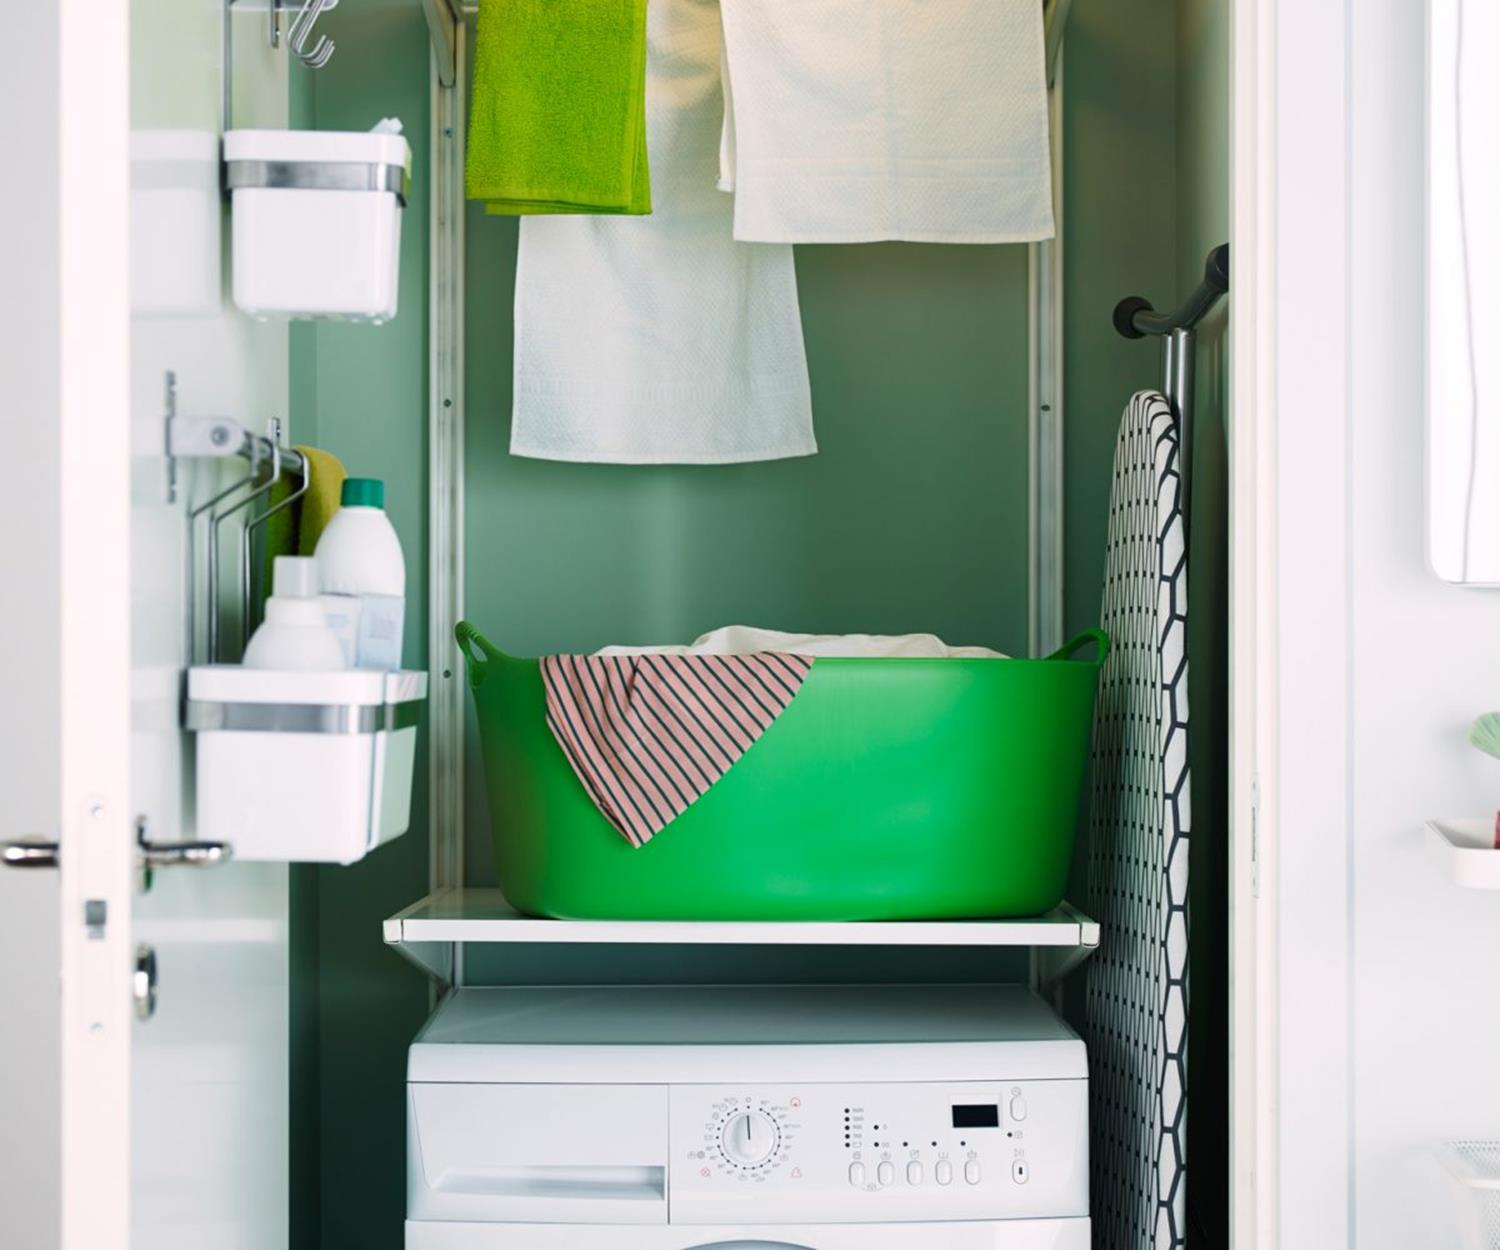 Best Cheap IKEA Cabinets Laundry Room Storage Ideas 9